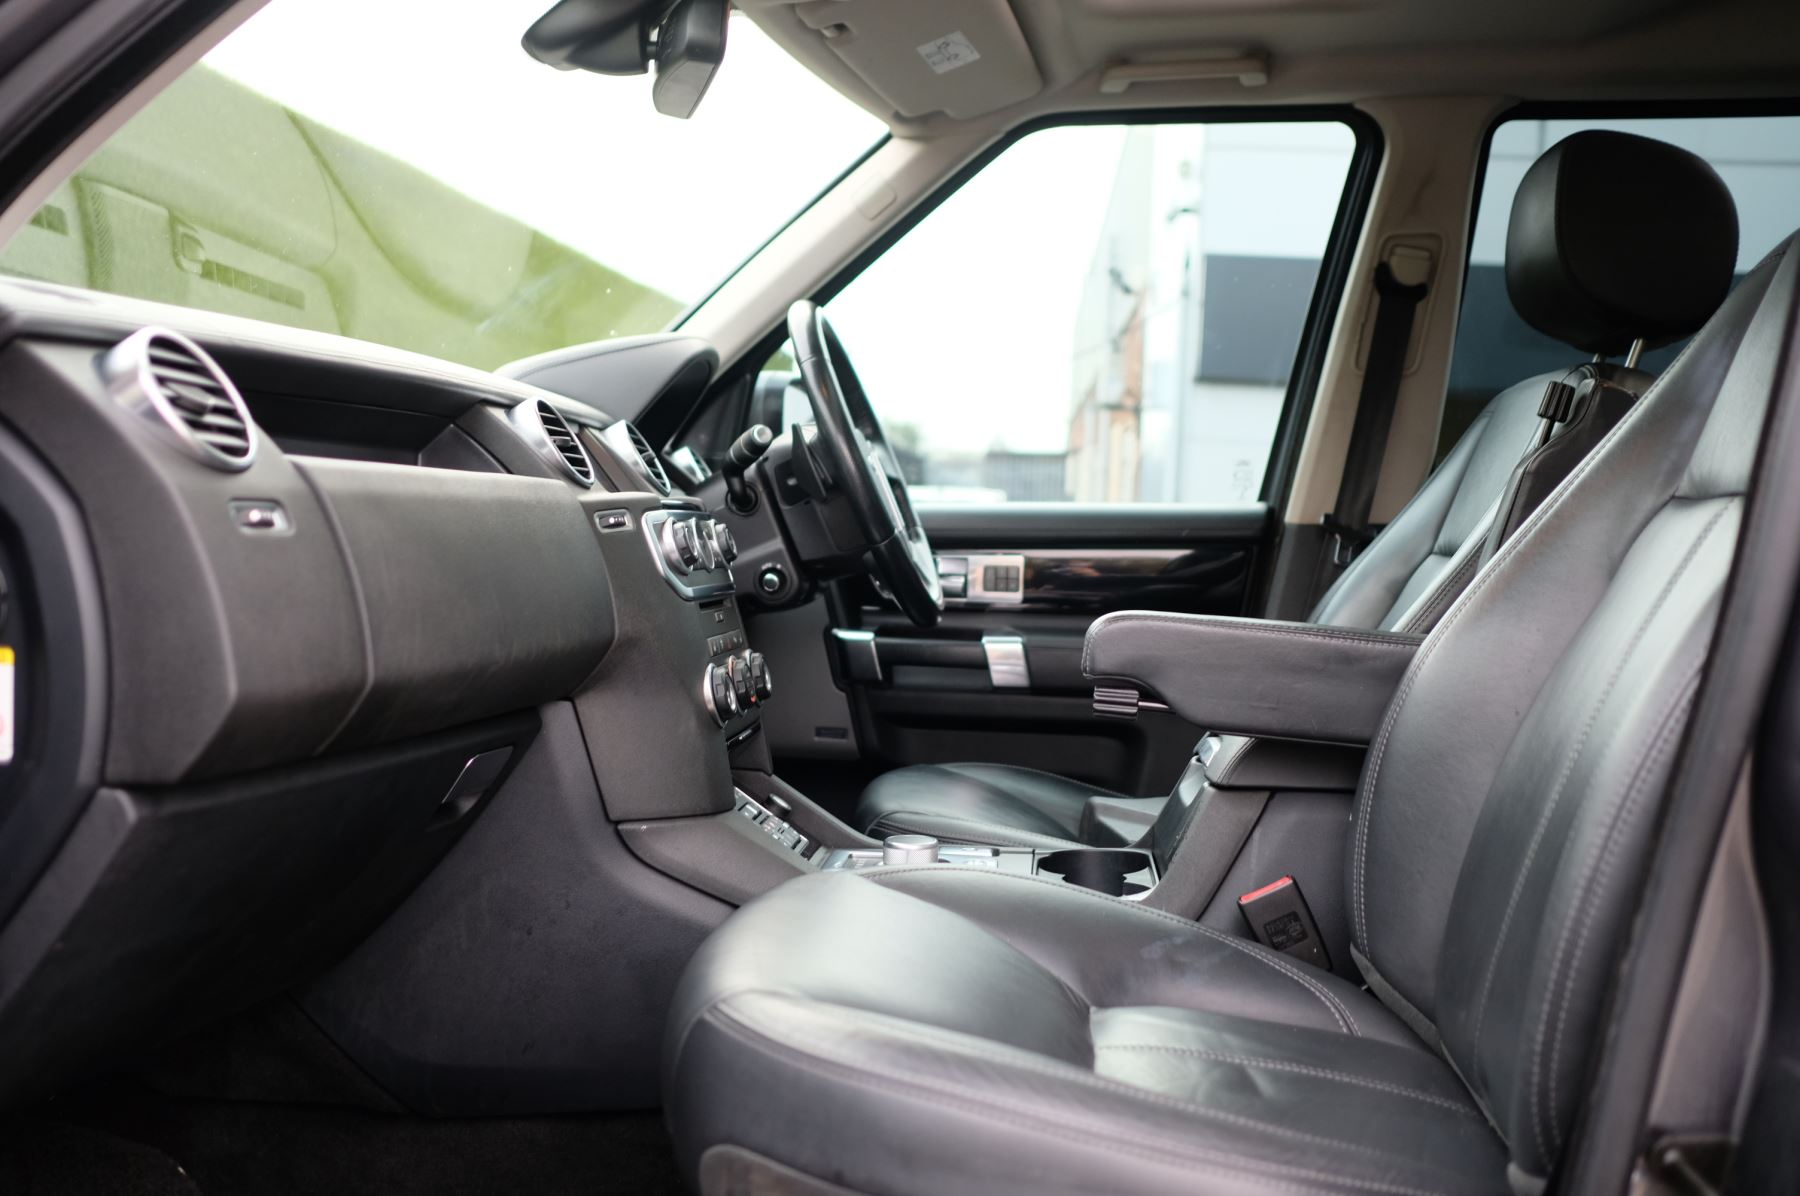 Land Rover Discovery 3.0 SDV6 HSE Luxury 5dr image 18